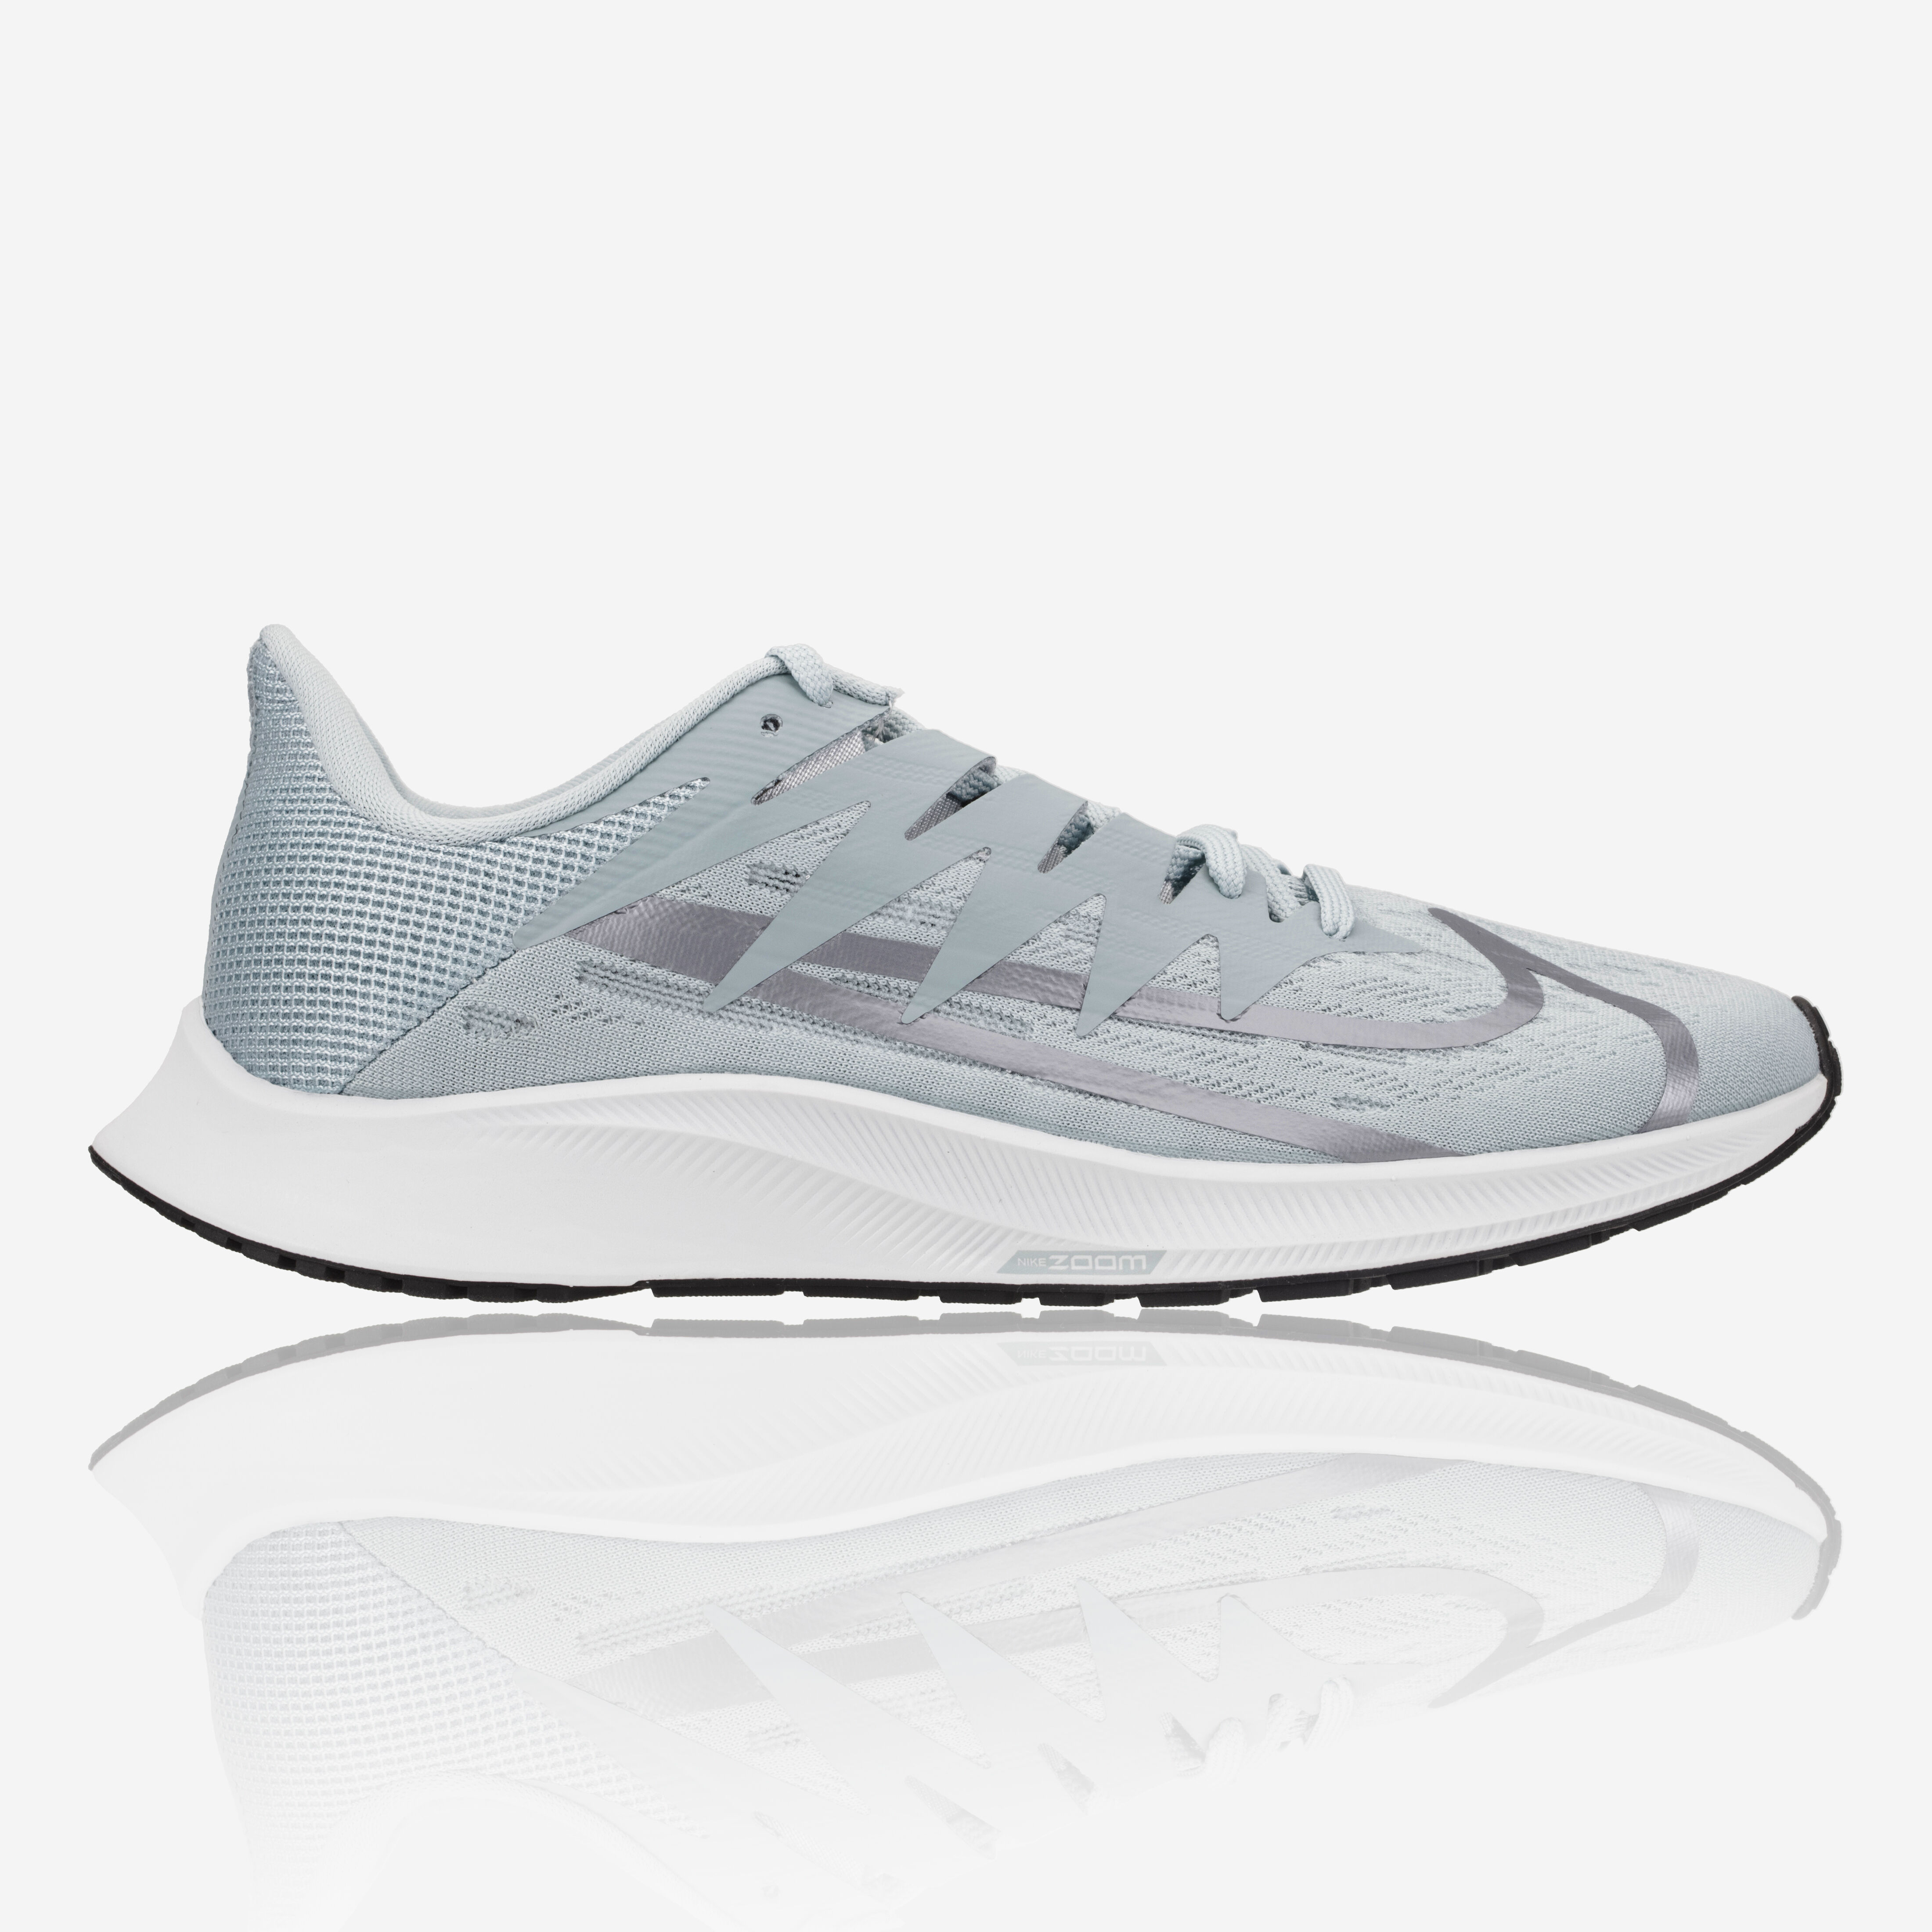 14 Tennis Shoes For Wide Feet 2020 Review